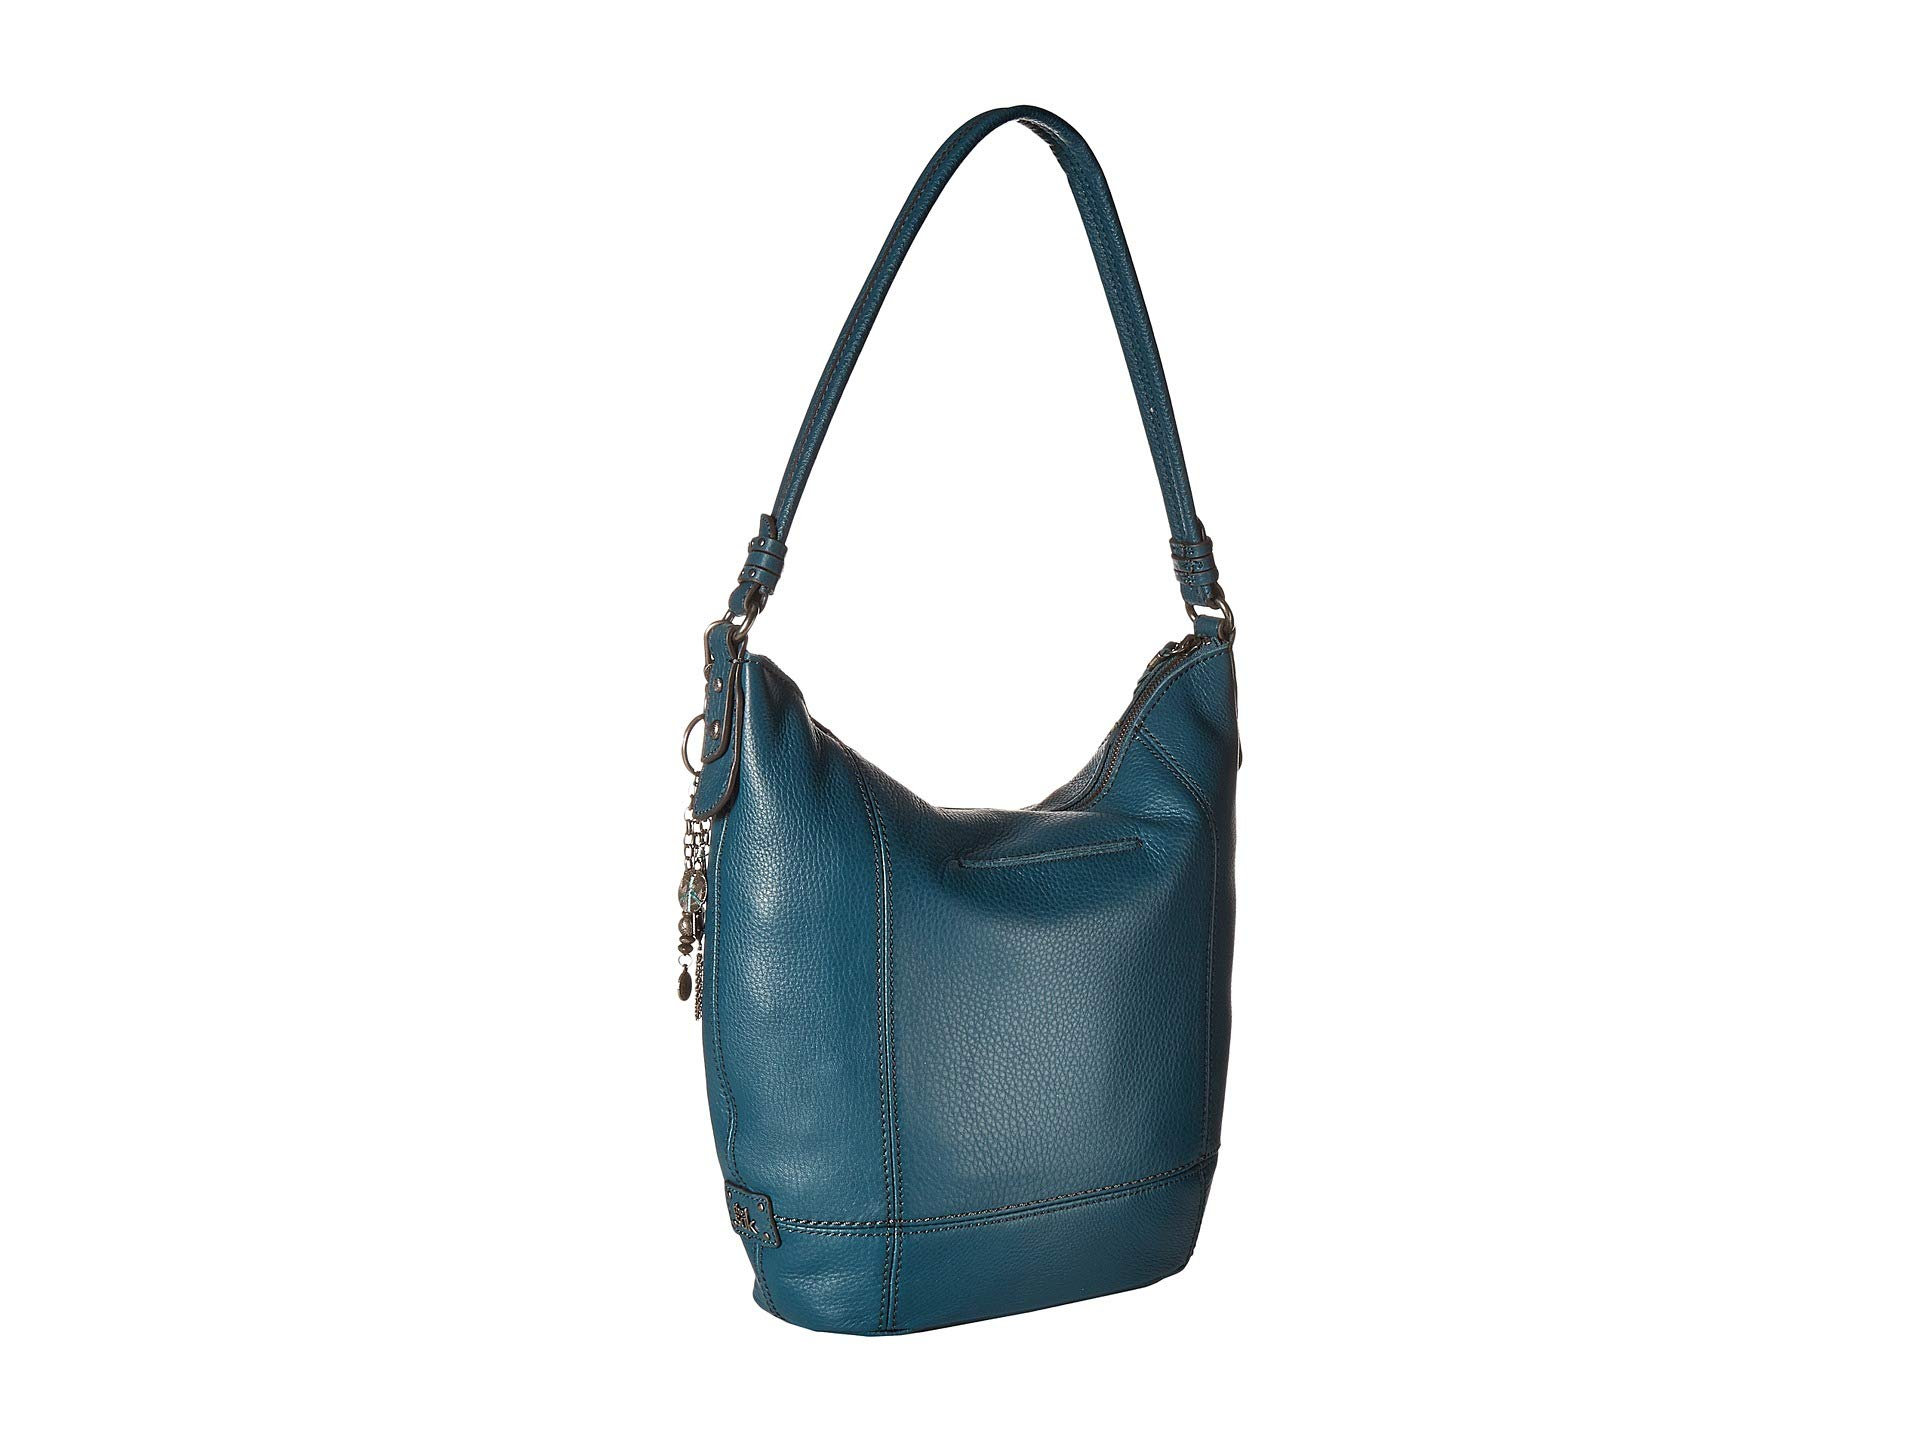 Sak Sequoia The The Lapis Hobo Sak Lapis Sak Hobo The Sequoia IqEwAq5